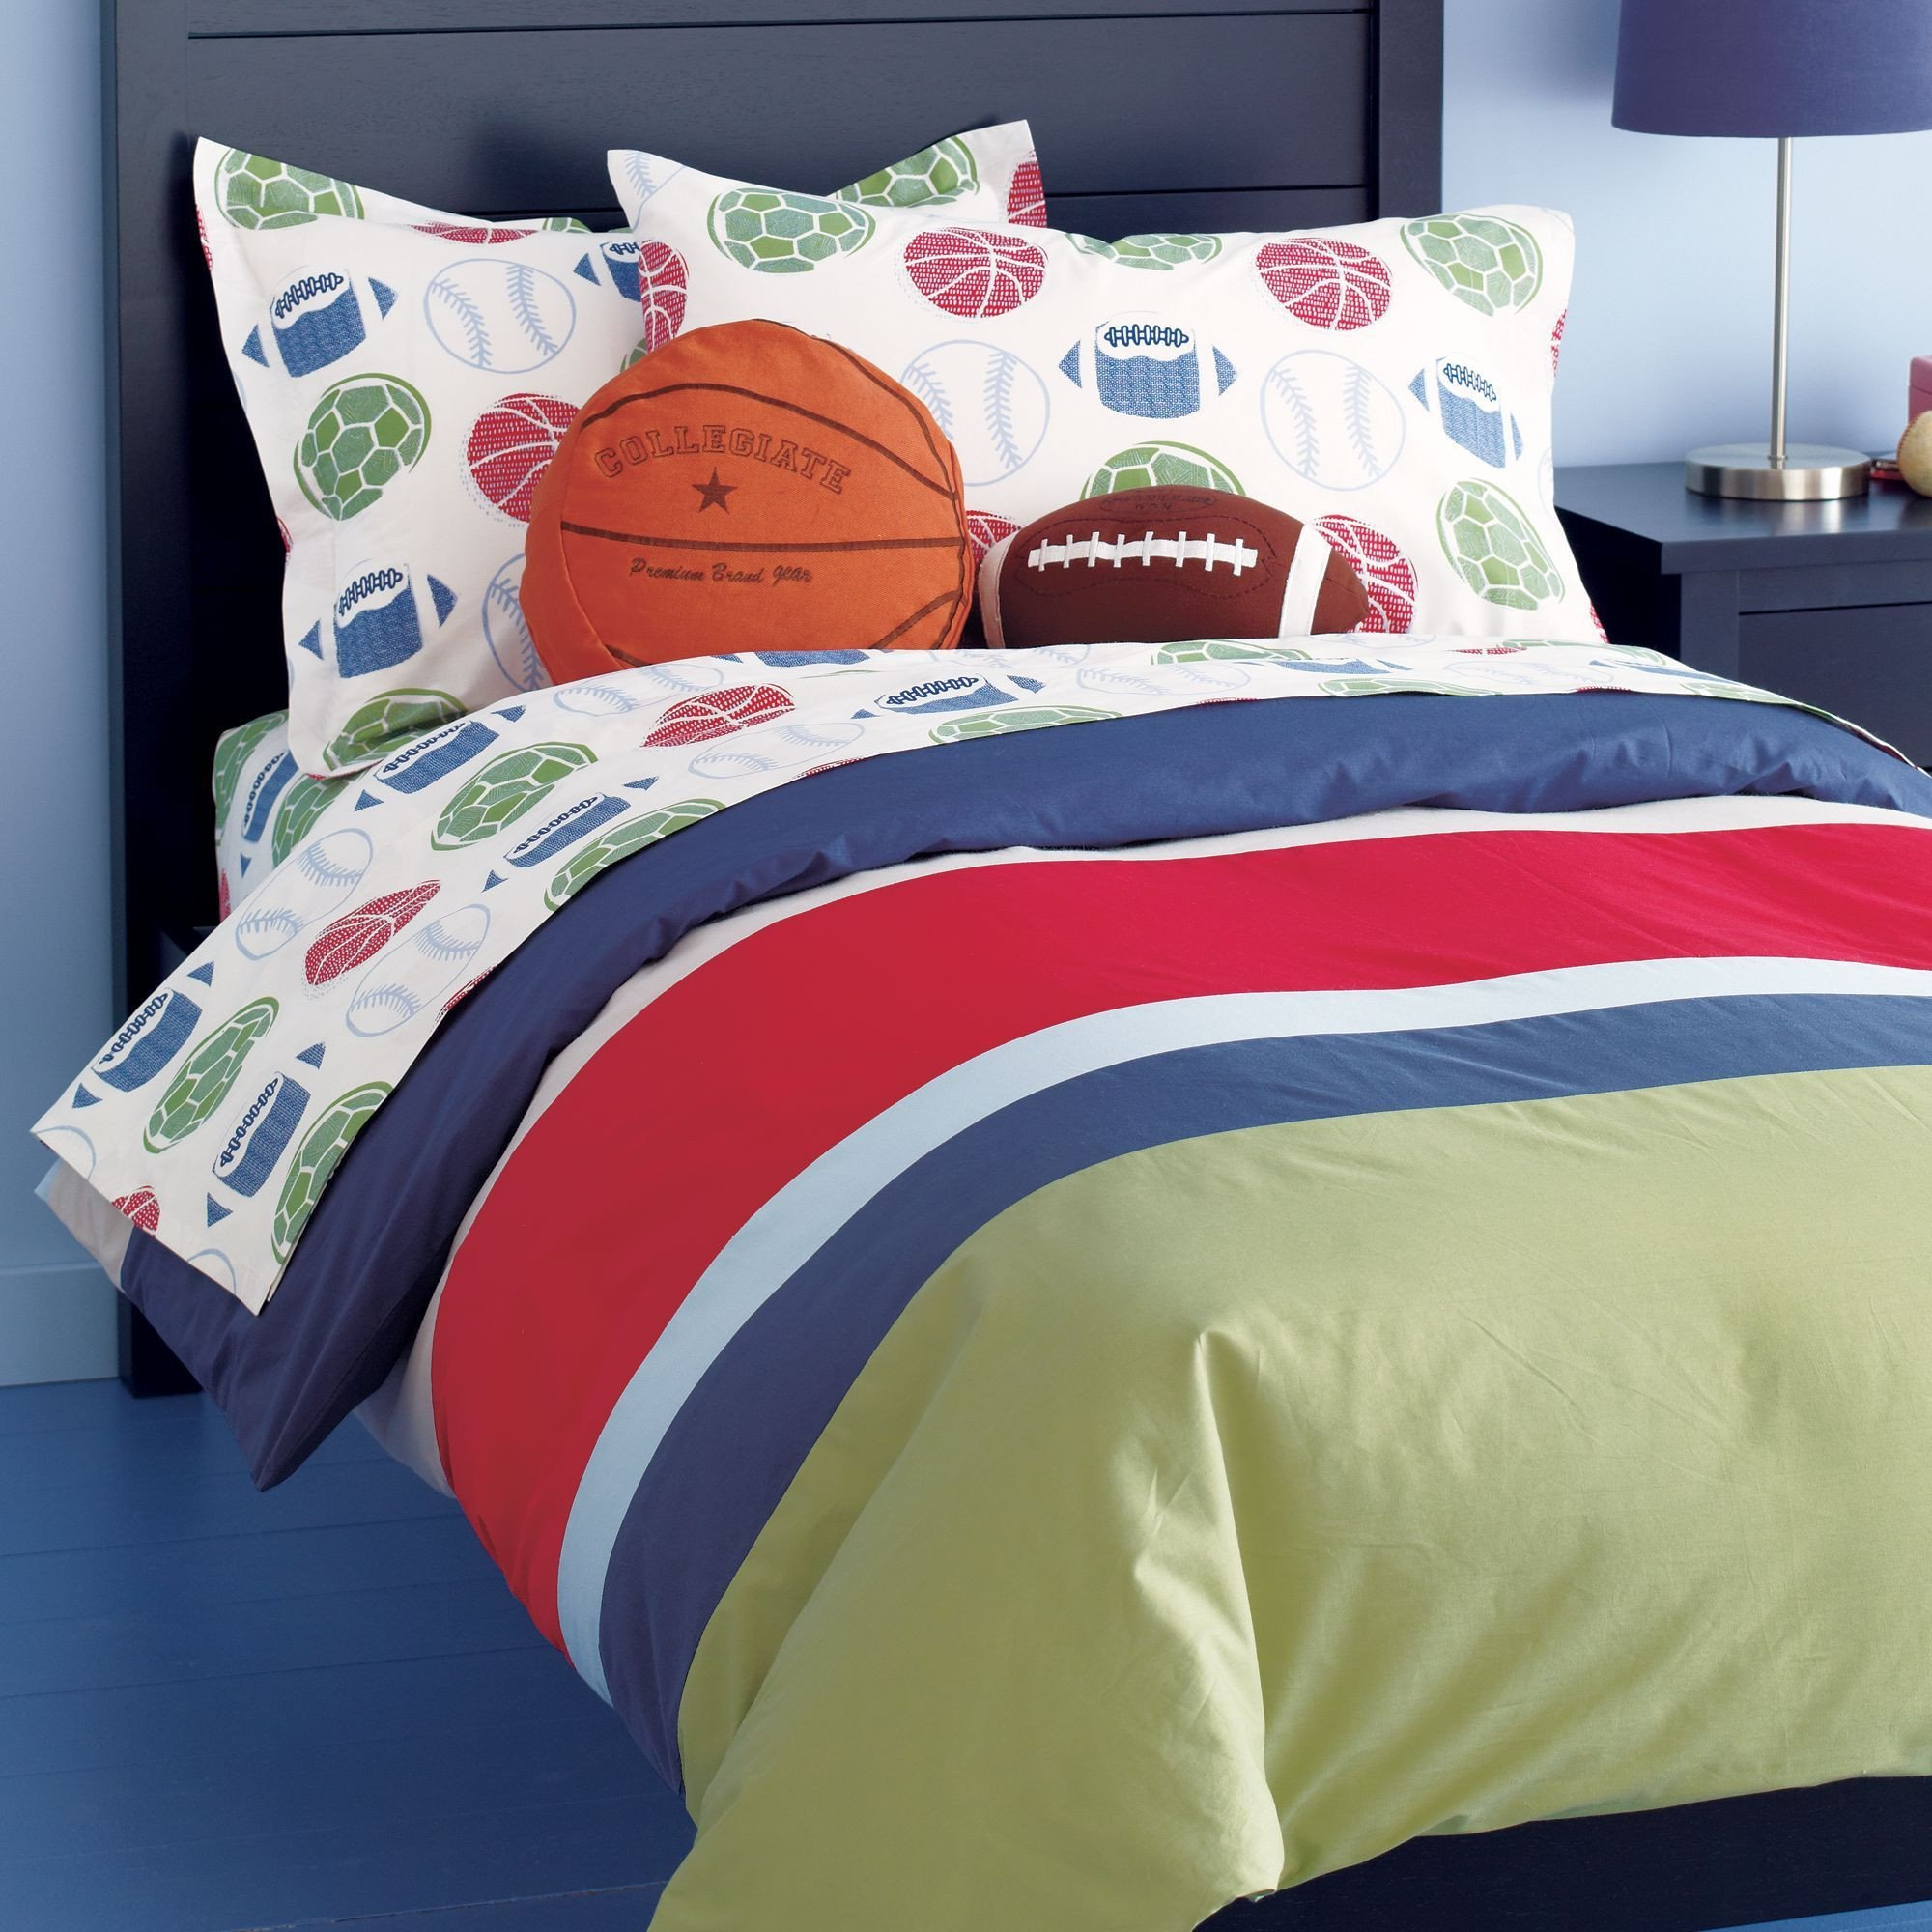 Sports themed Bedroom Decor New Sports Bedding Set Basketball Football Baseballs and